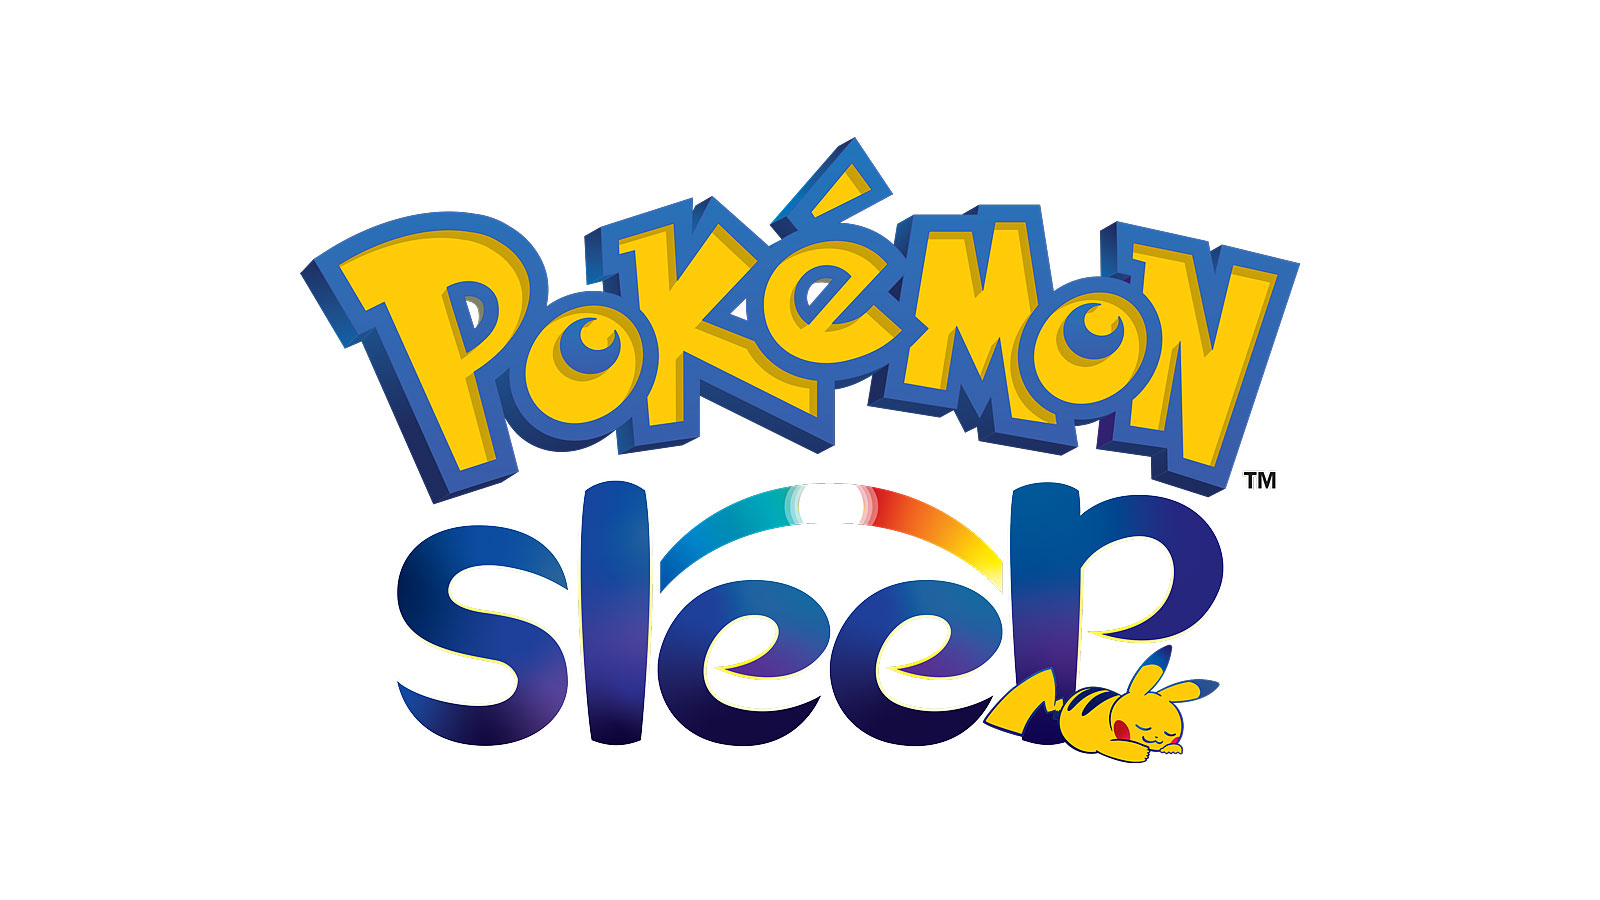 Pokémon came for your exercise routine, now it's coming for your sleep